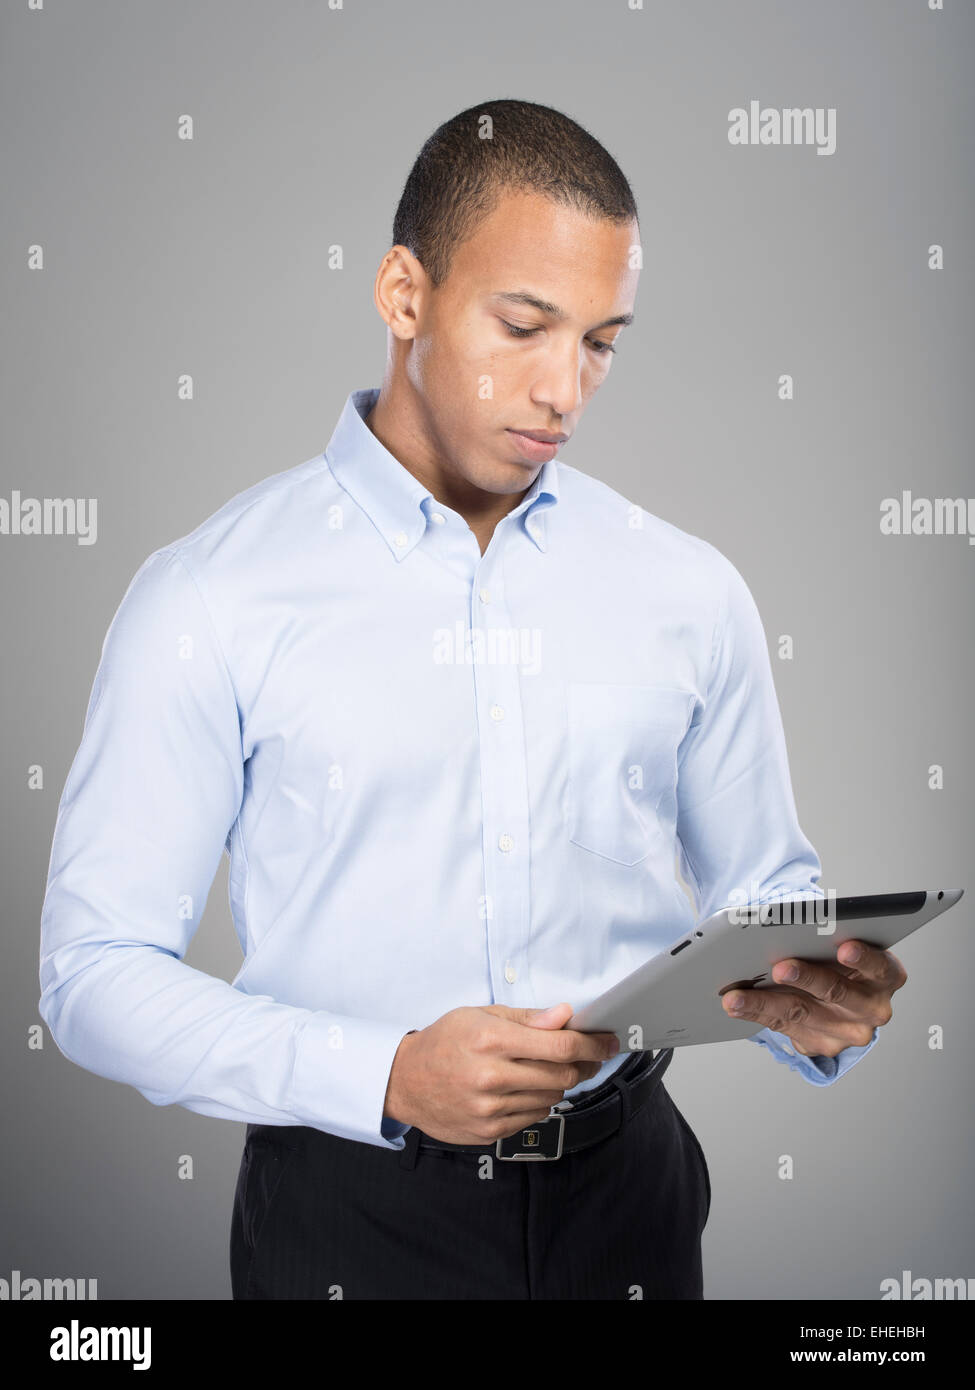 Man using Apple iPad tablet computer - Stock Image